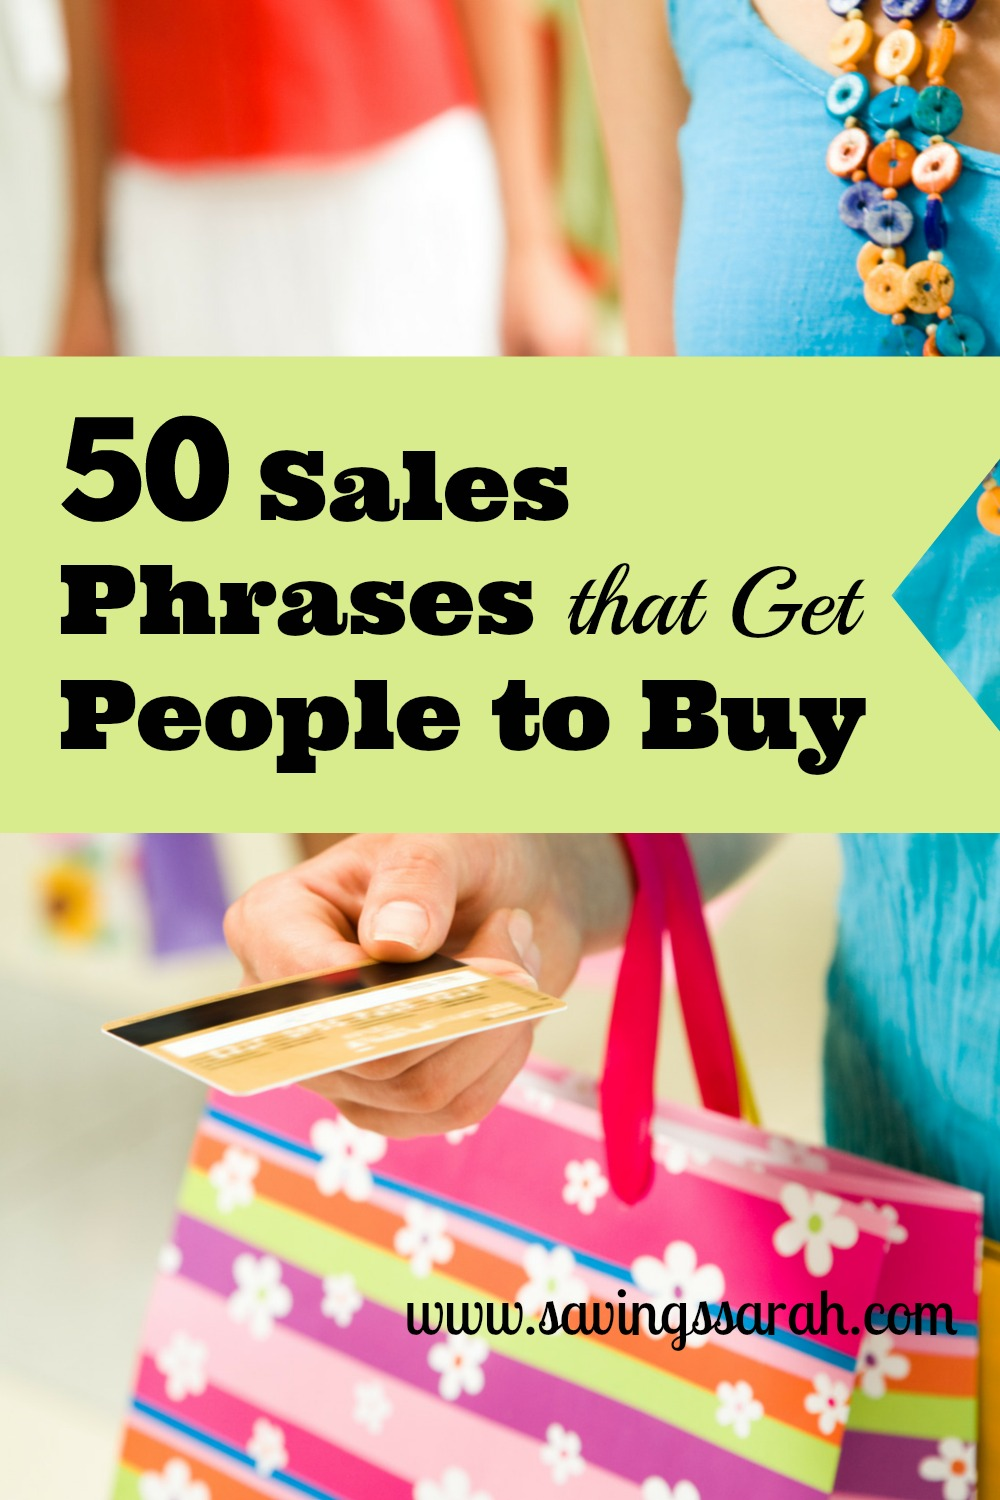 50 Sales Phrases That Get People to Buy